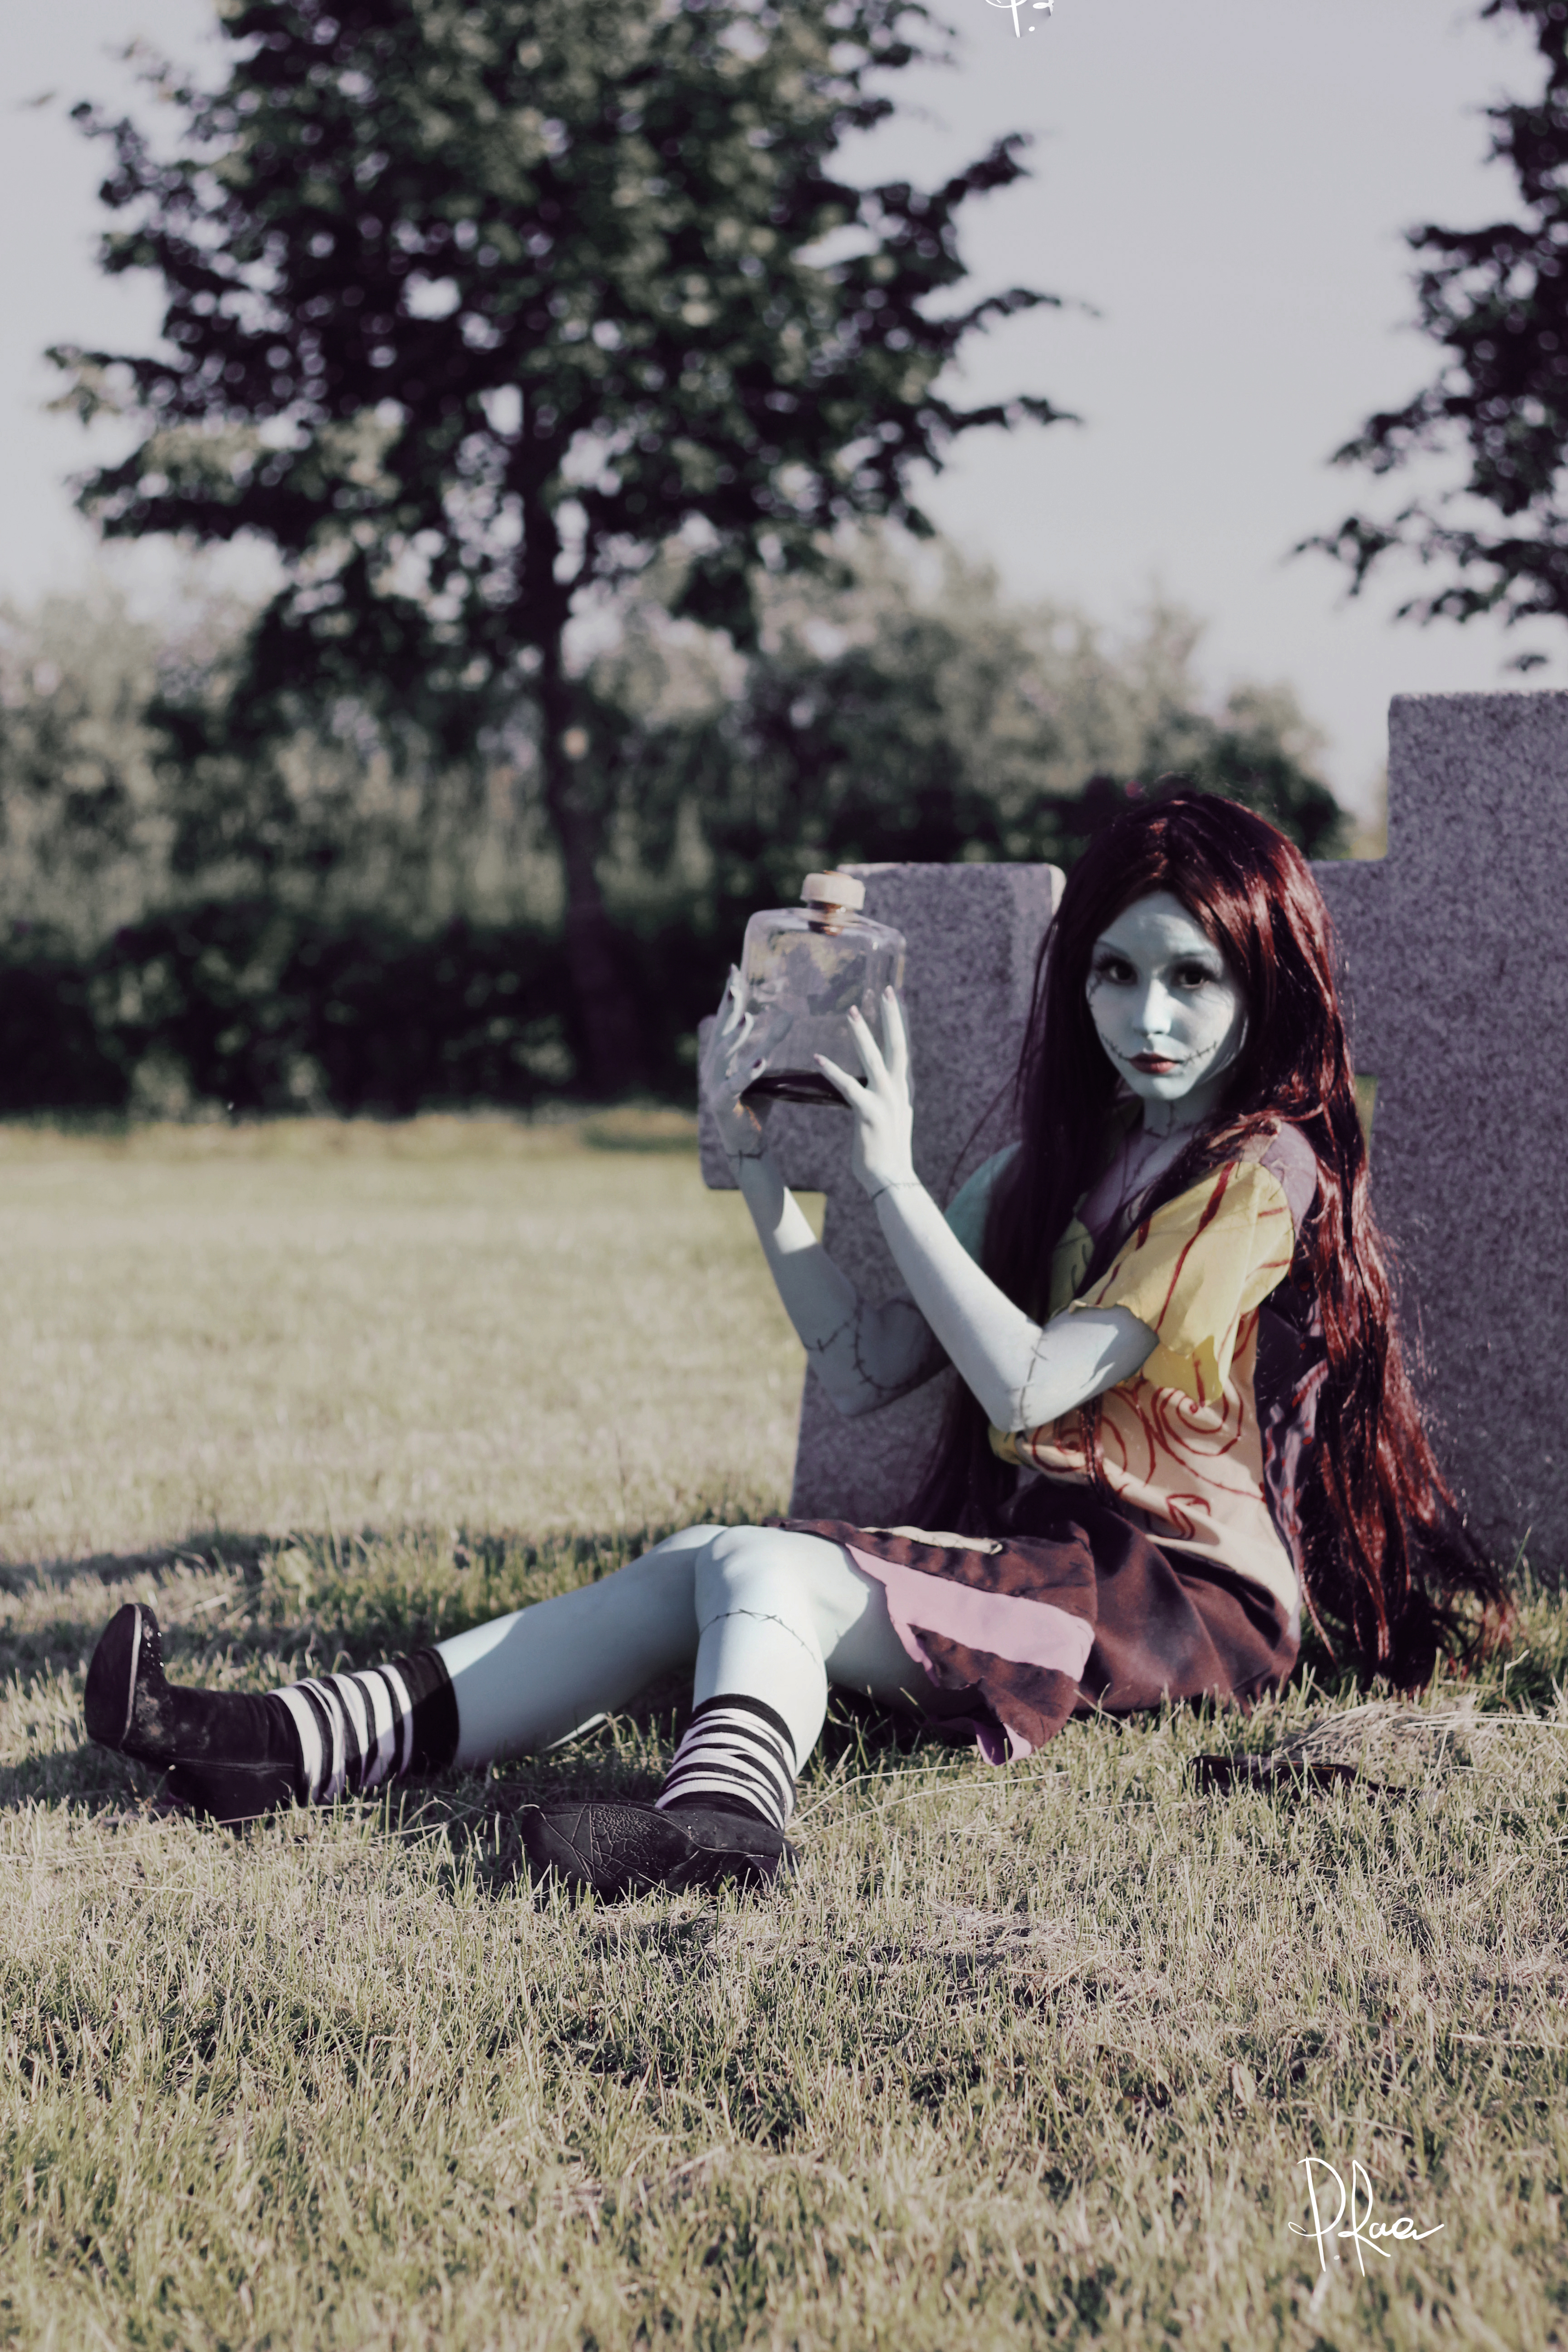 Sally Nightmare Before Christmas Cosplay 86534 | LOADTVE